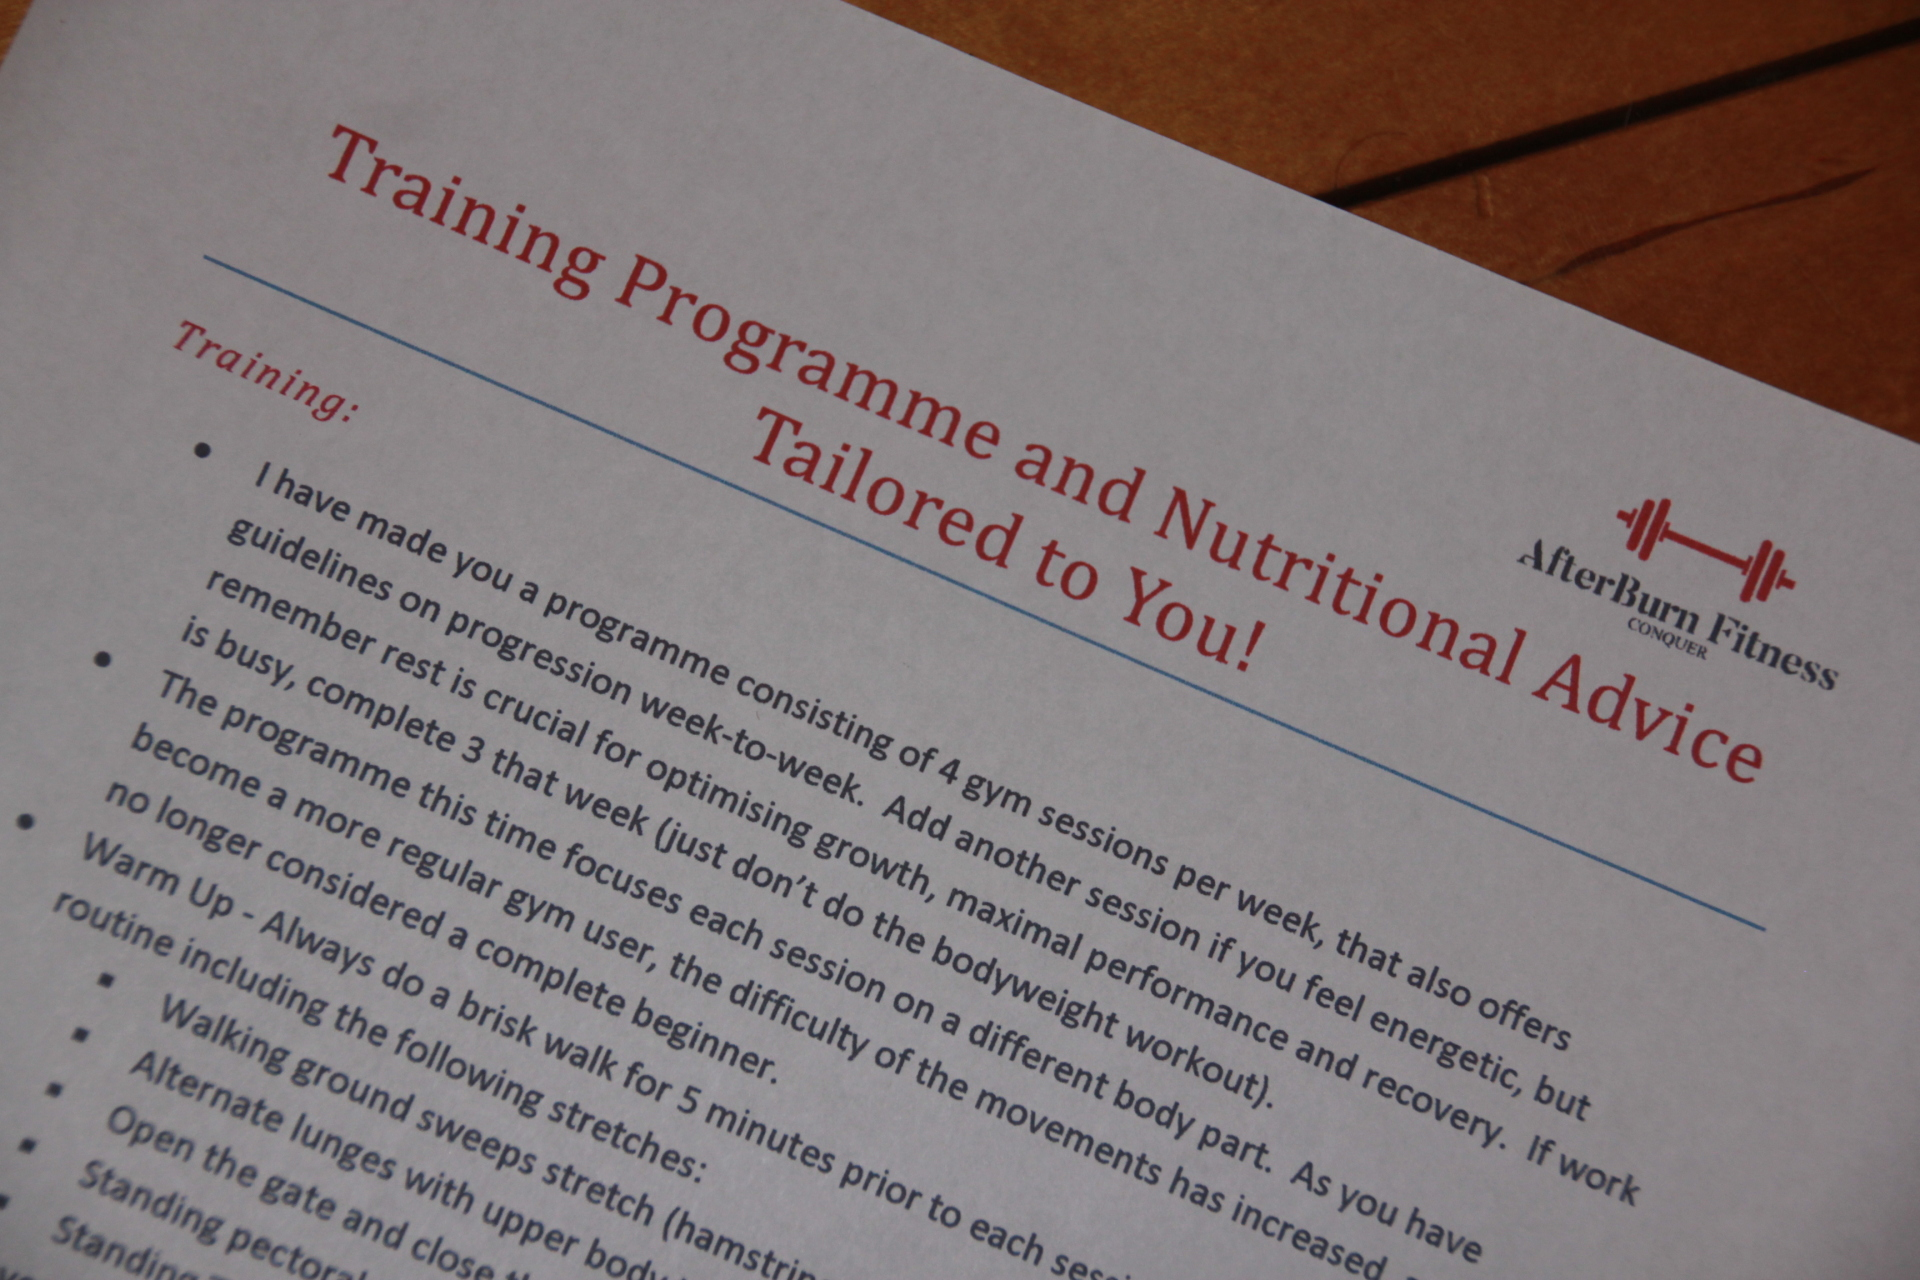 Training Programme and Nutrition